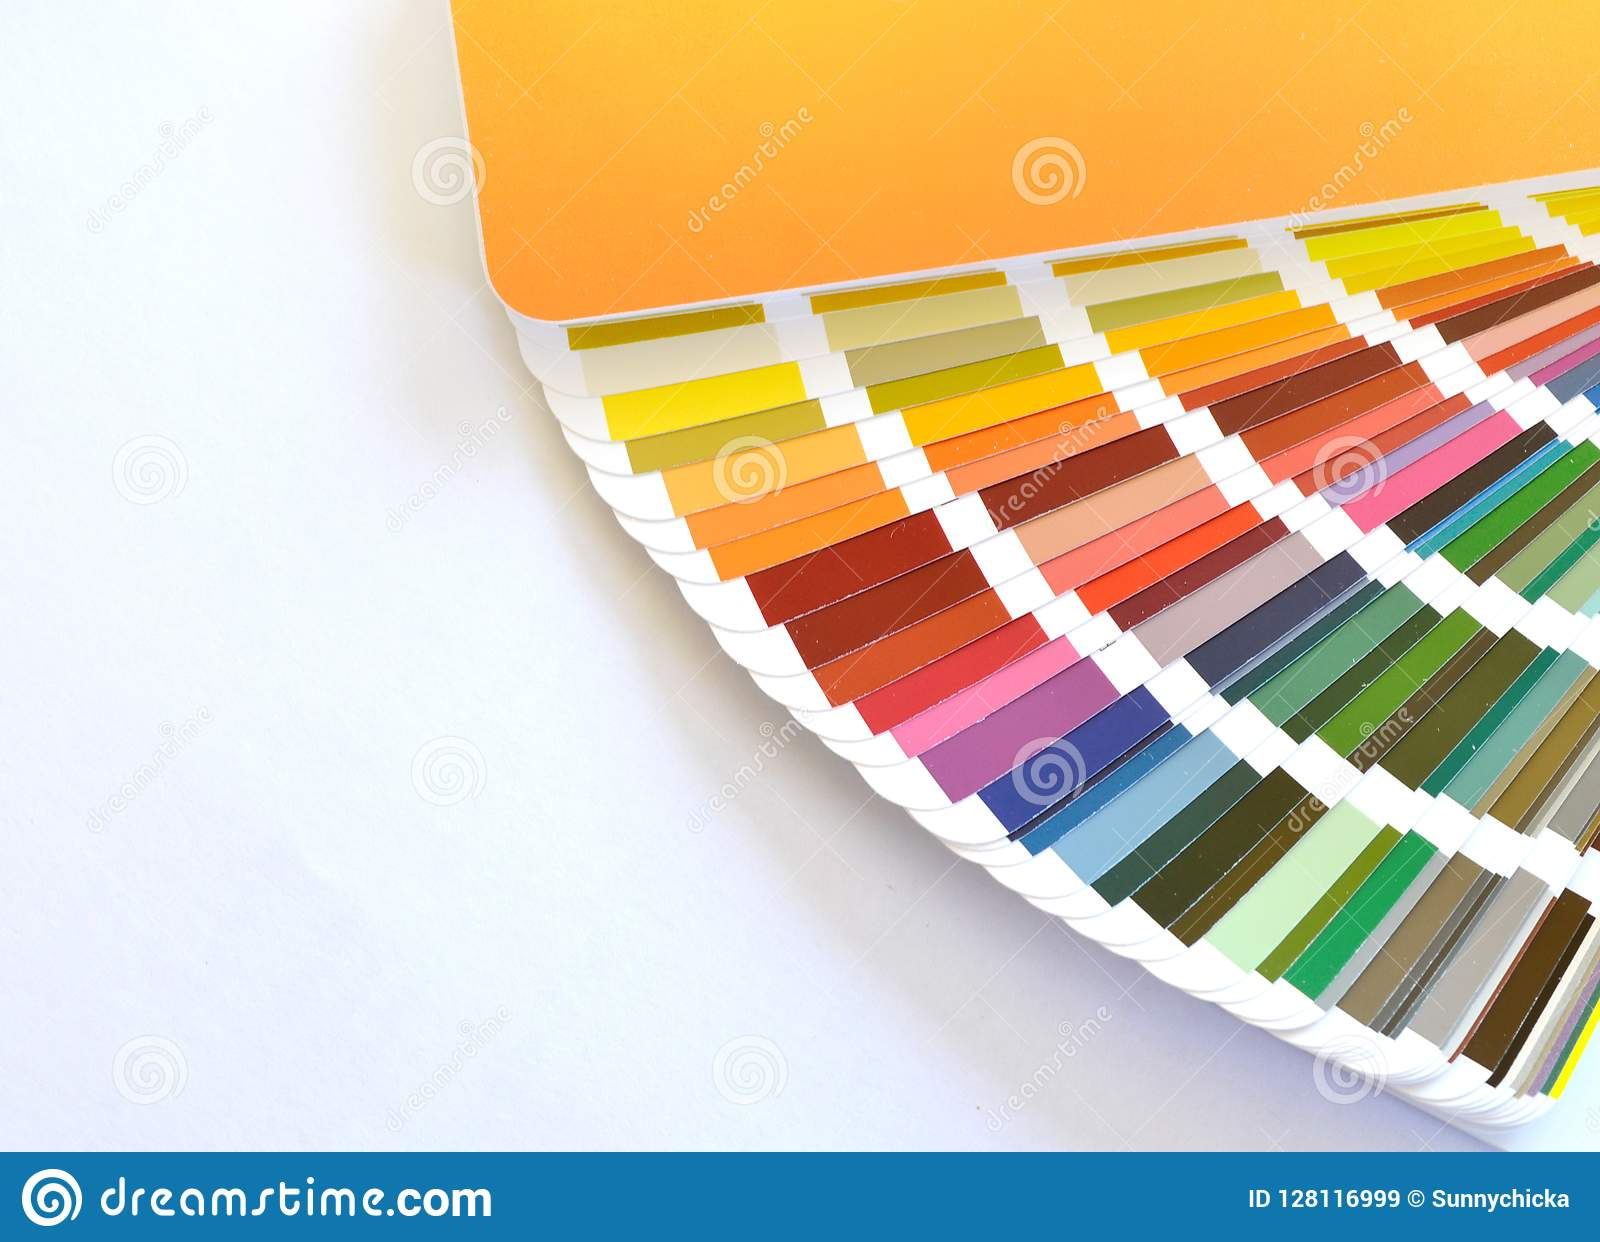 Ral Cmyk Ral Color Fan Cmyk Color Color Pattern Stock Image Image